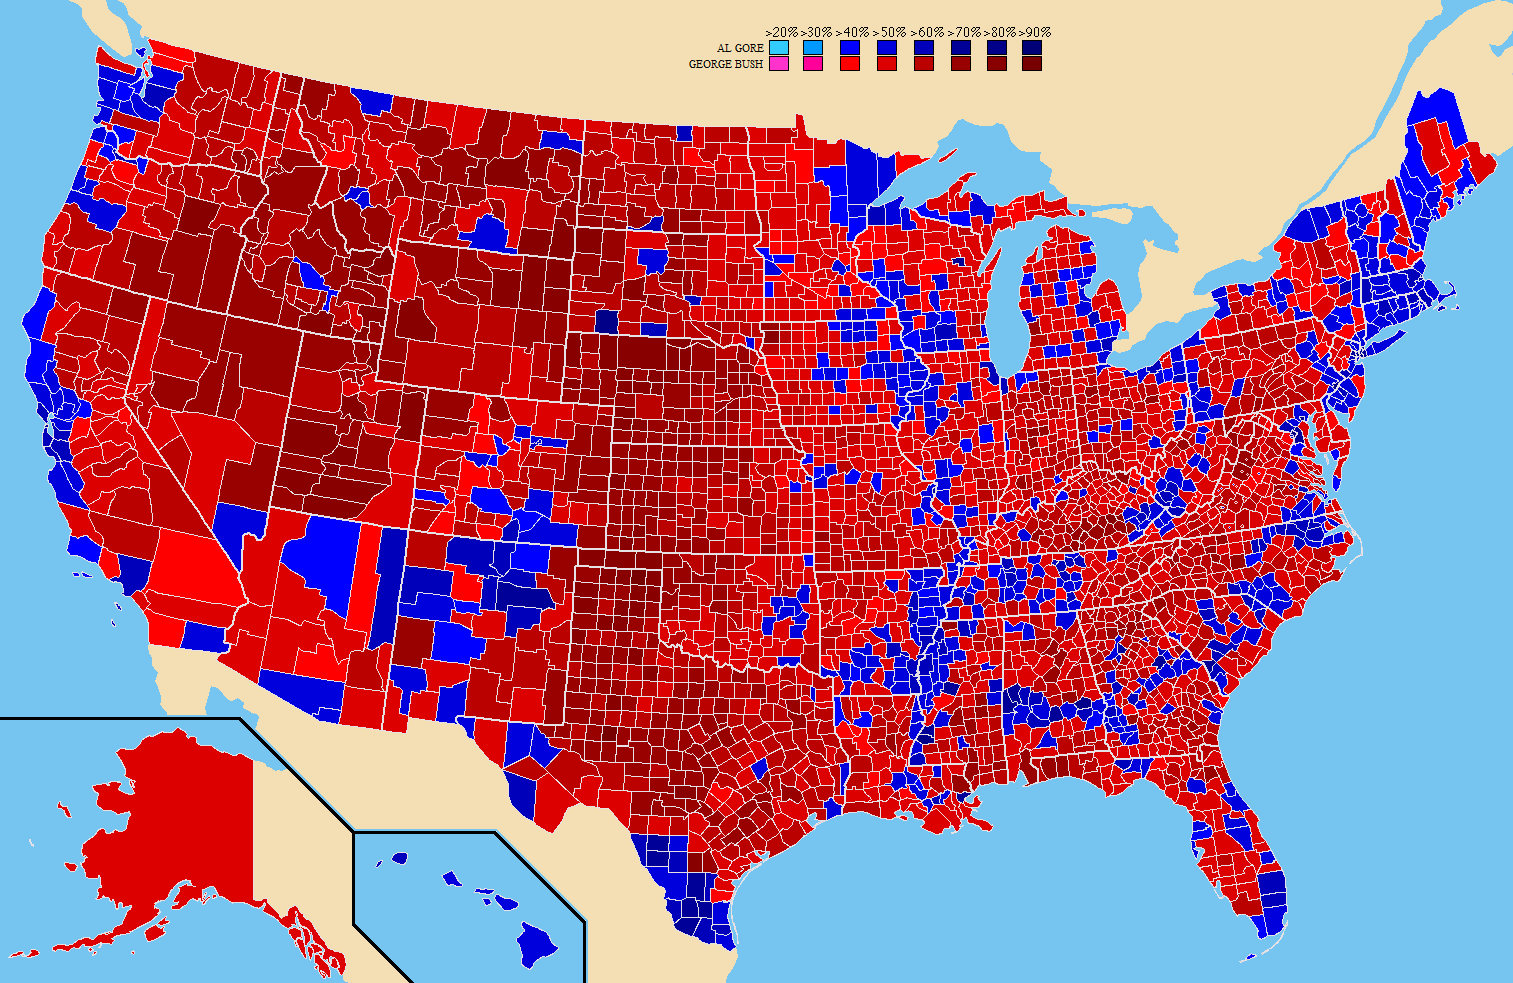 2000 us presidential election